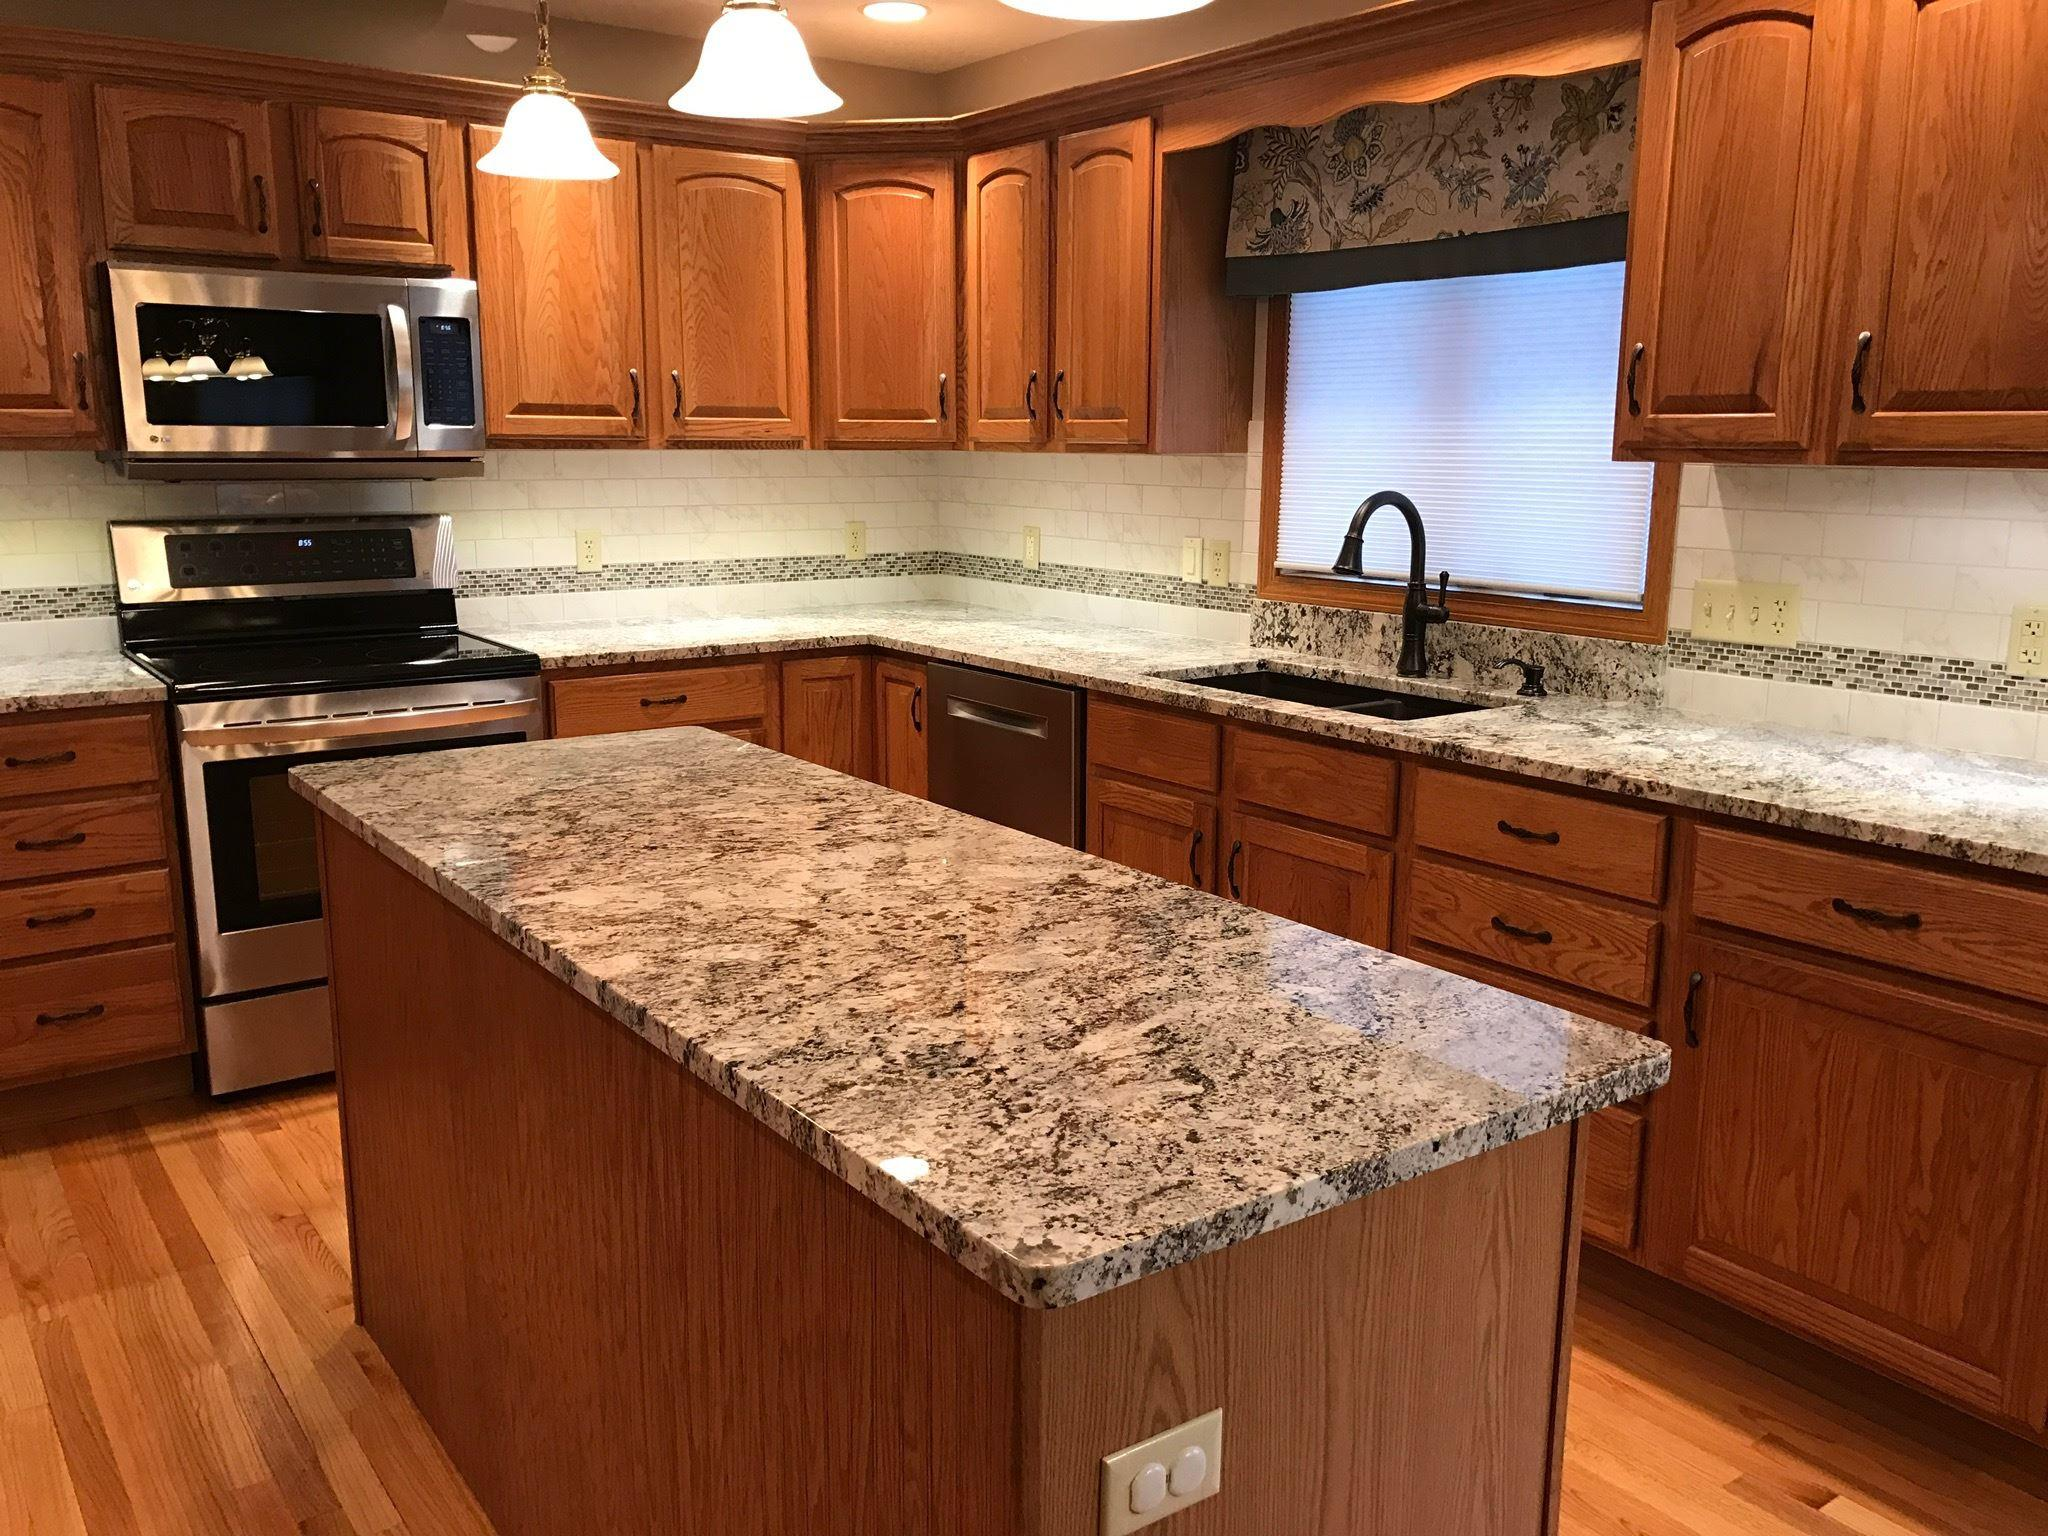 Granite Countertops Cincinnati Ohio Stone Mart Columbus Ohio Bindu Bhatia Astrology